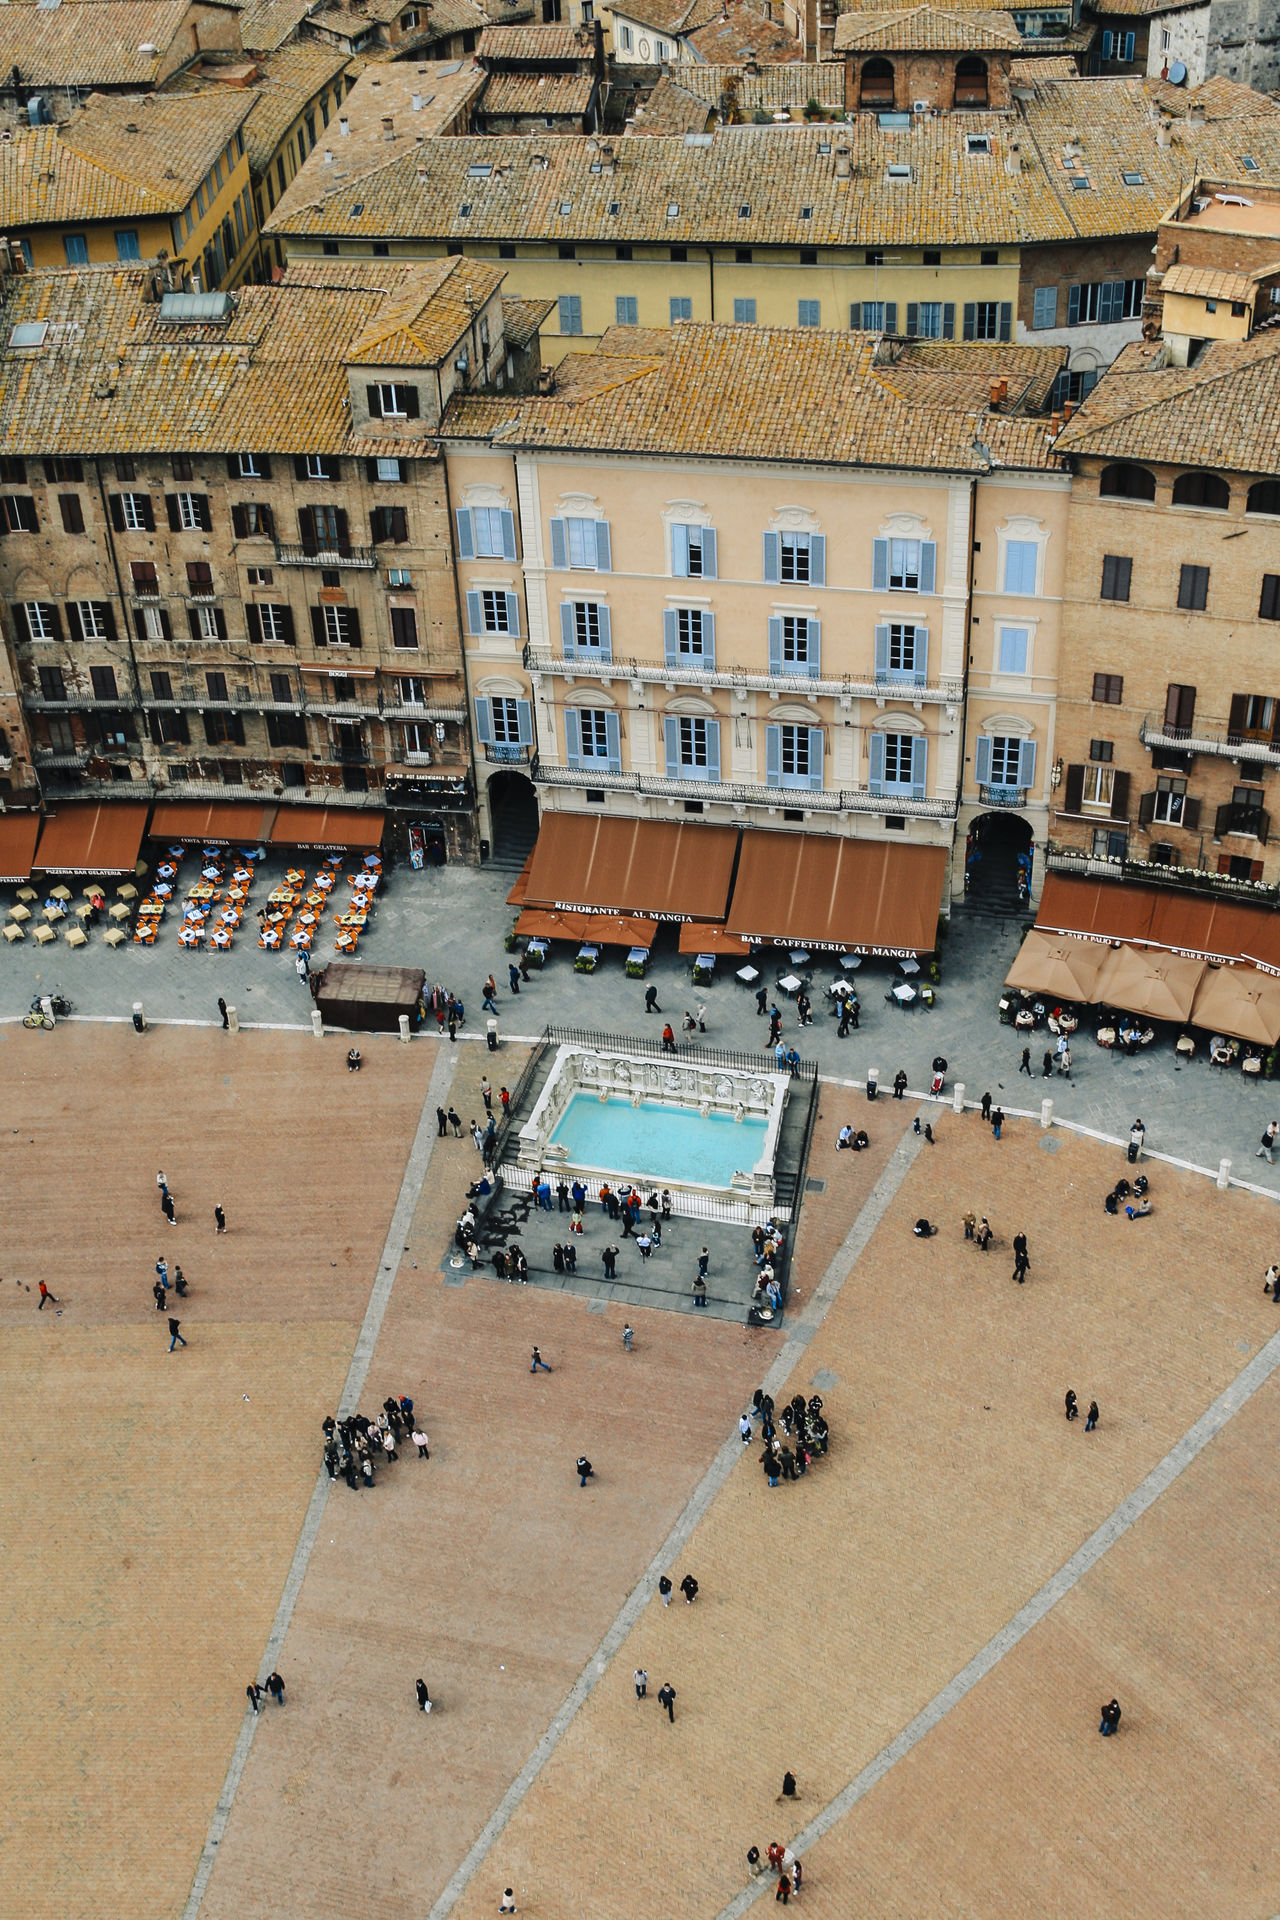 Overview of the Piazza del Campo, Siena, Tuscany, Italy Architecture Building Exterior Built Structure City City Life Crowd Day High Angle View In Front Of Italy Large Group Of People Piazza Del Campo Residential Structure Siena Togetherness Tourism Town Hall Town Square Travel Travel Destinations Tuscany Vacations